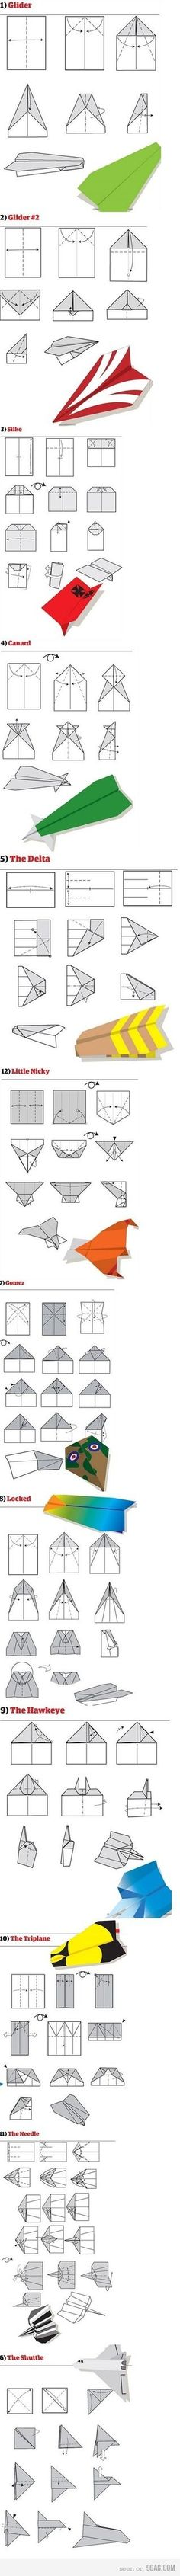 36 Best Paper Airplanes Images Crafts For Kids Kid How To Fold An Origami Naboo Starfighter And Other Starships From Star Perfect Marriage Of Engineering My Boys Will Love This